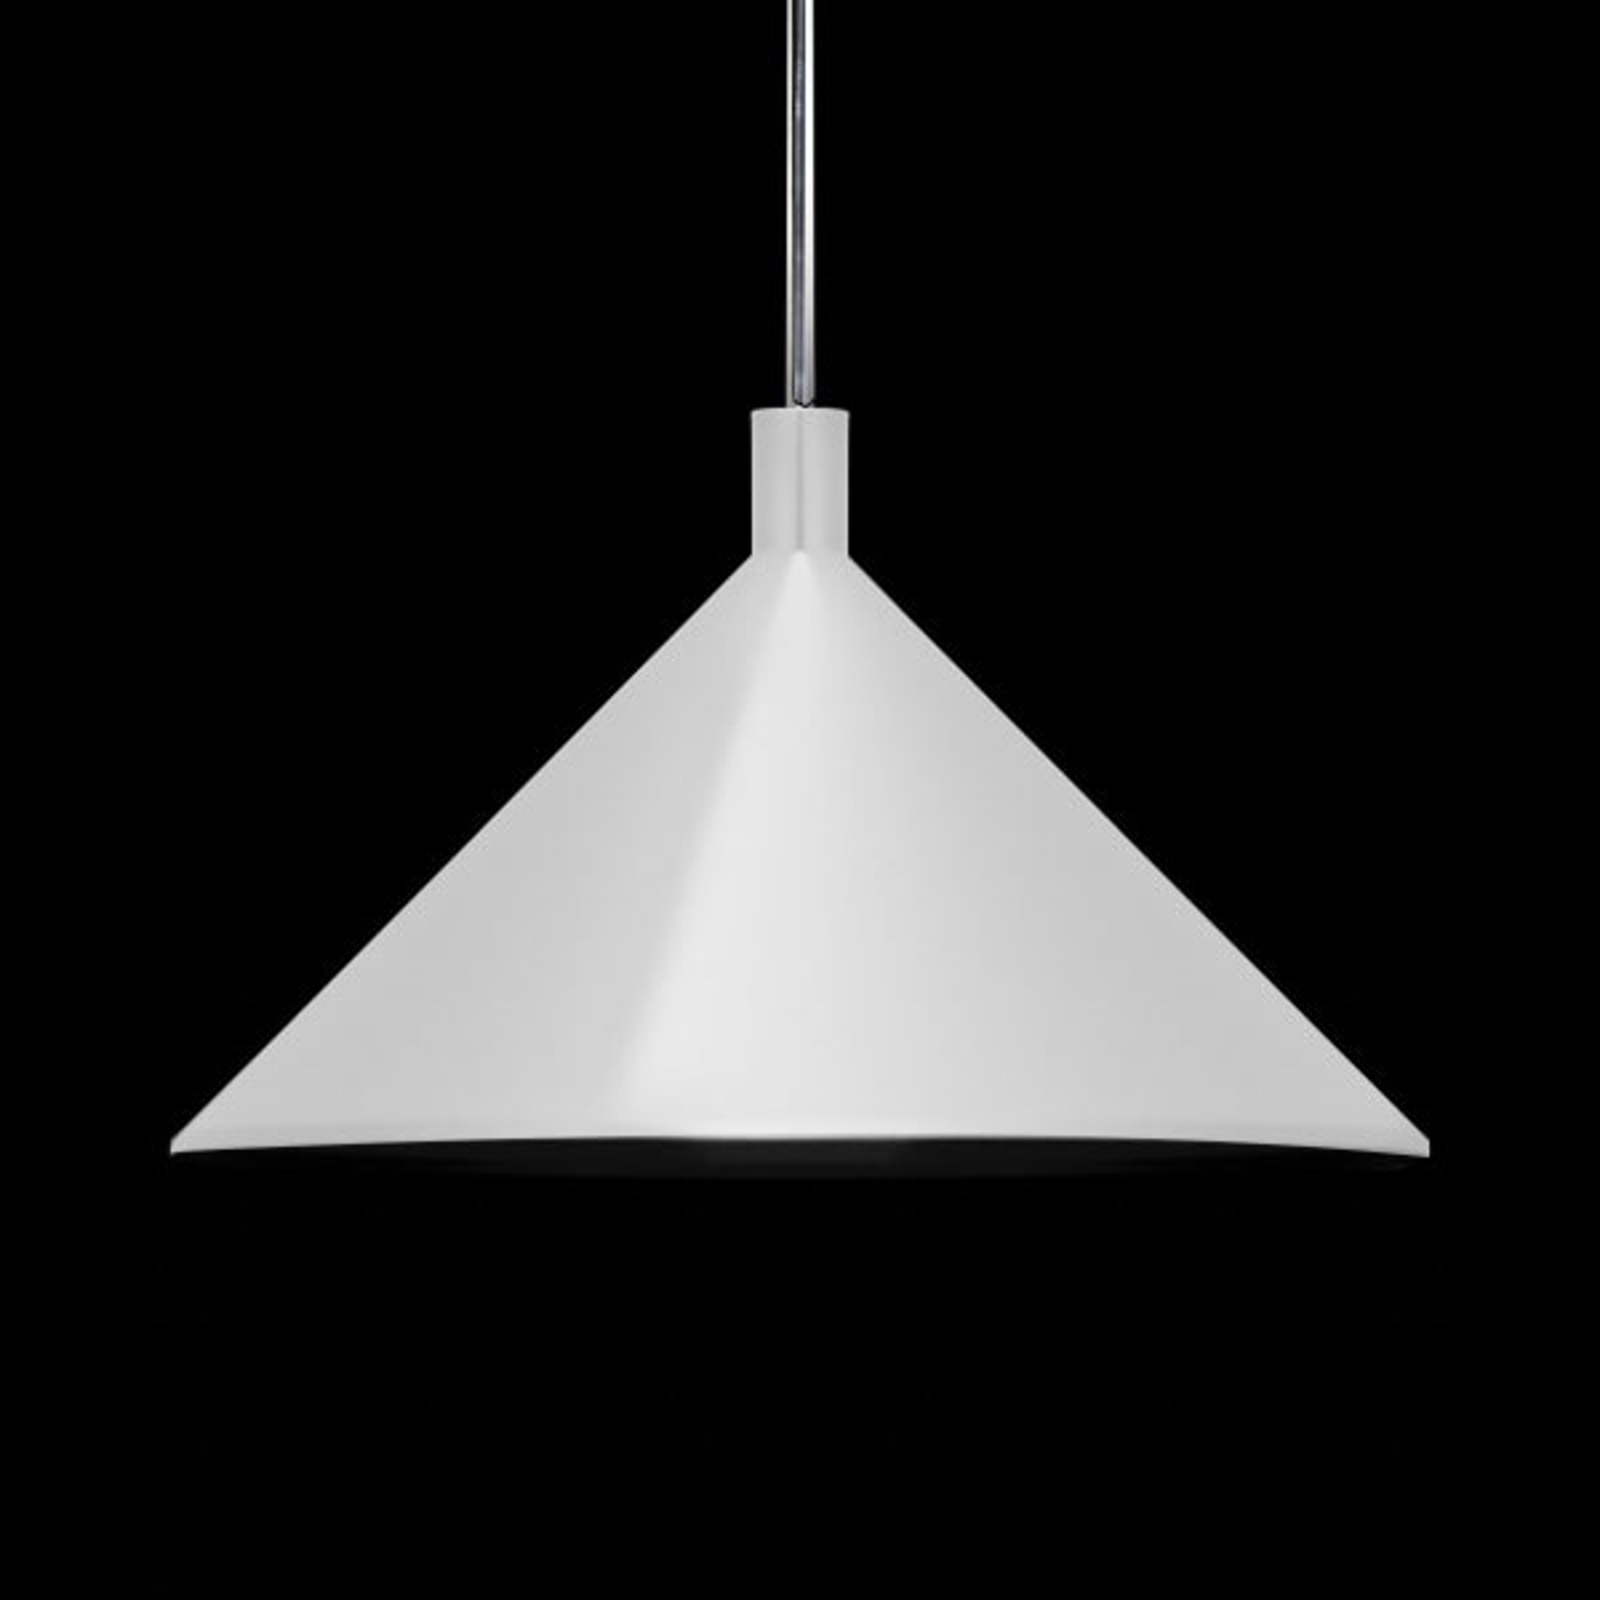 Martinelli Luce Cono suspension blanche, Ø 45 cm